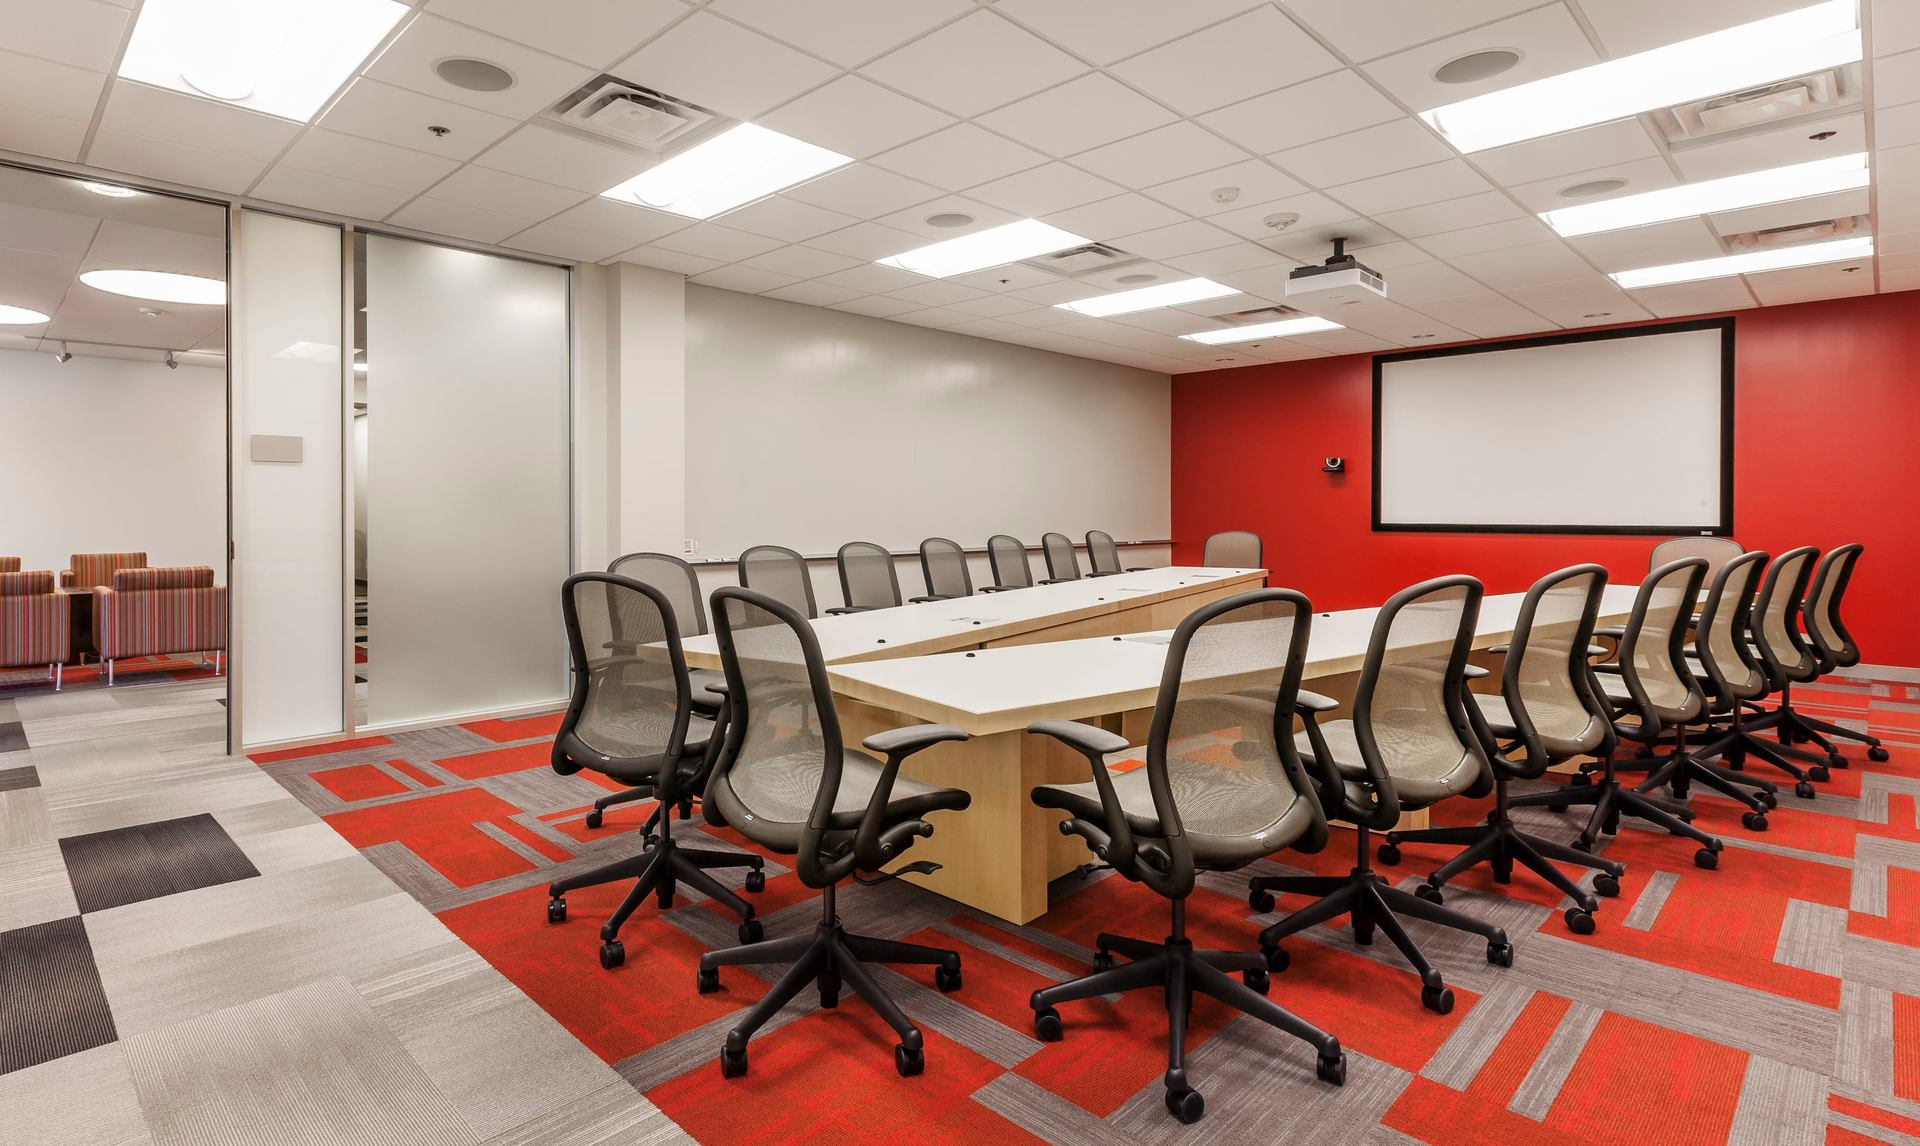 A large conference room design at the CPG Corporate office in Shoreview, Minnesota, by HCM Architects.